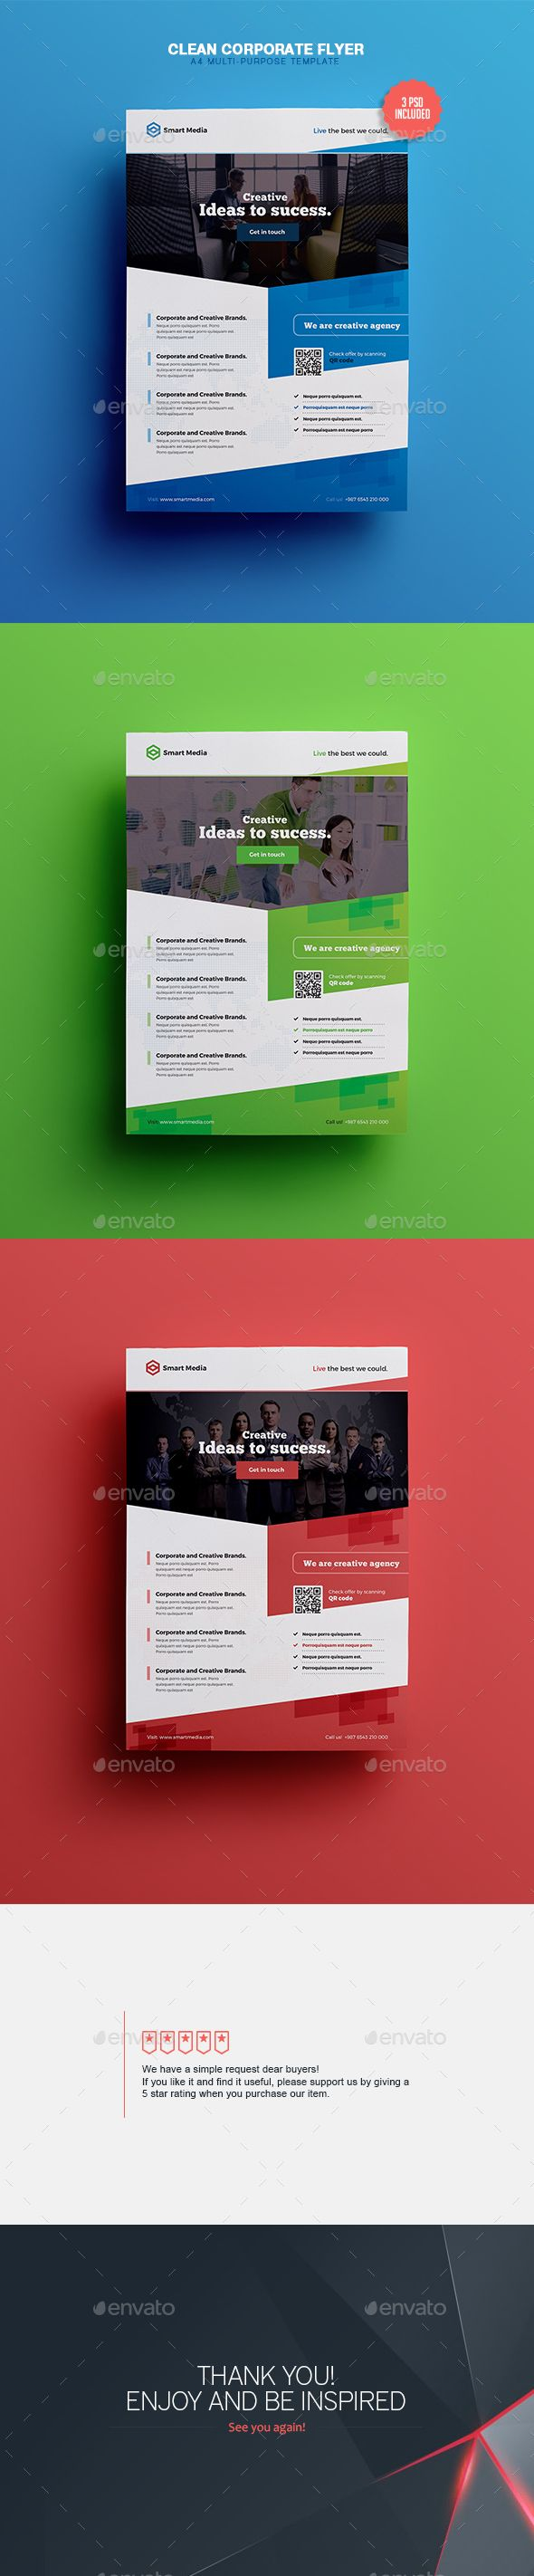 Clean & Corporate - A4 Flyer Template  #product #product promotion #product promotion flyer • Available here → http://graphicriver.net/item/clean-corporate-a4-flyer-template/15597490?ref=pxcr